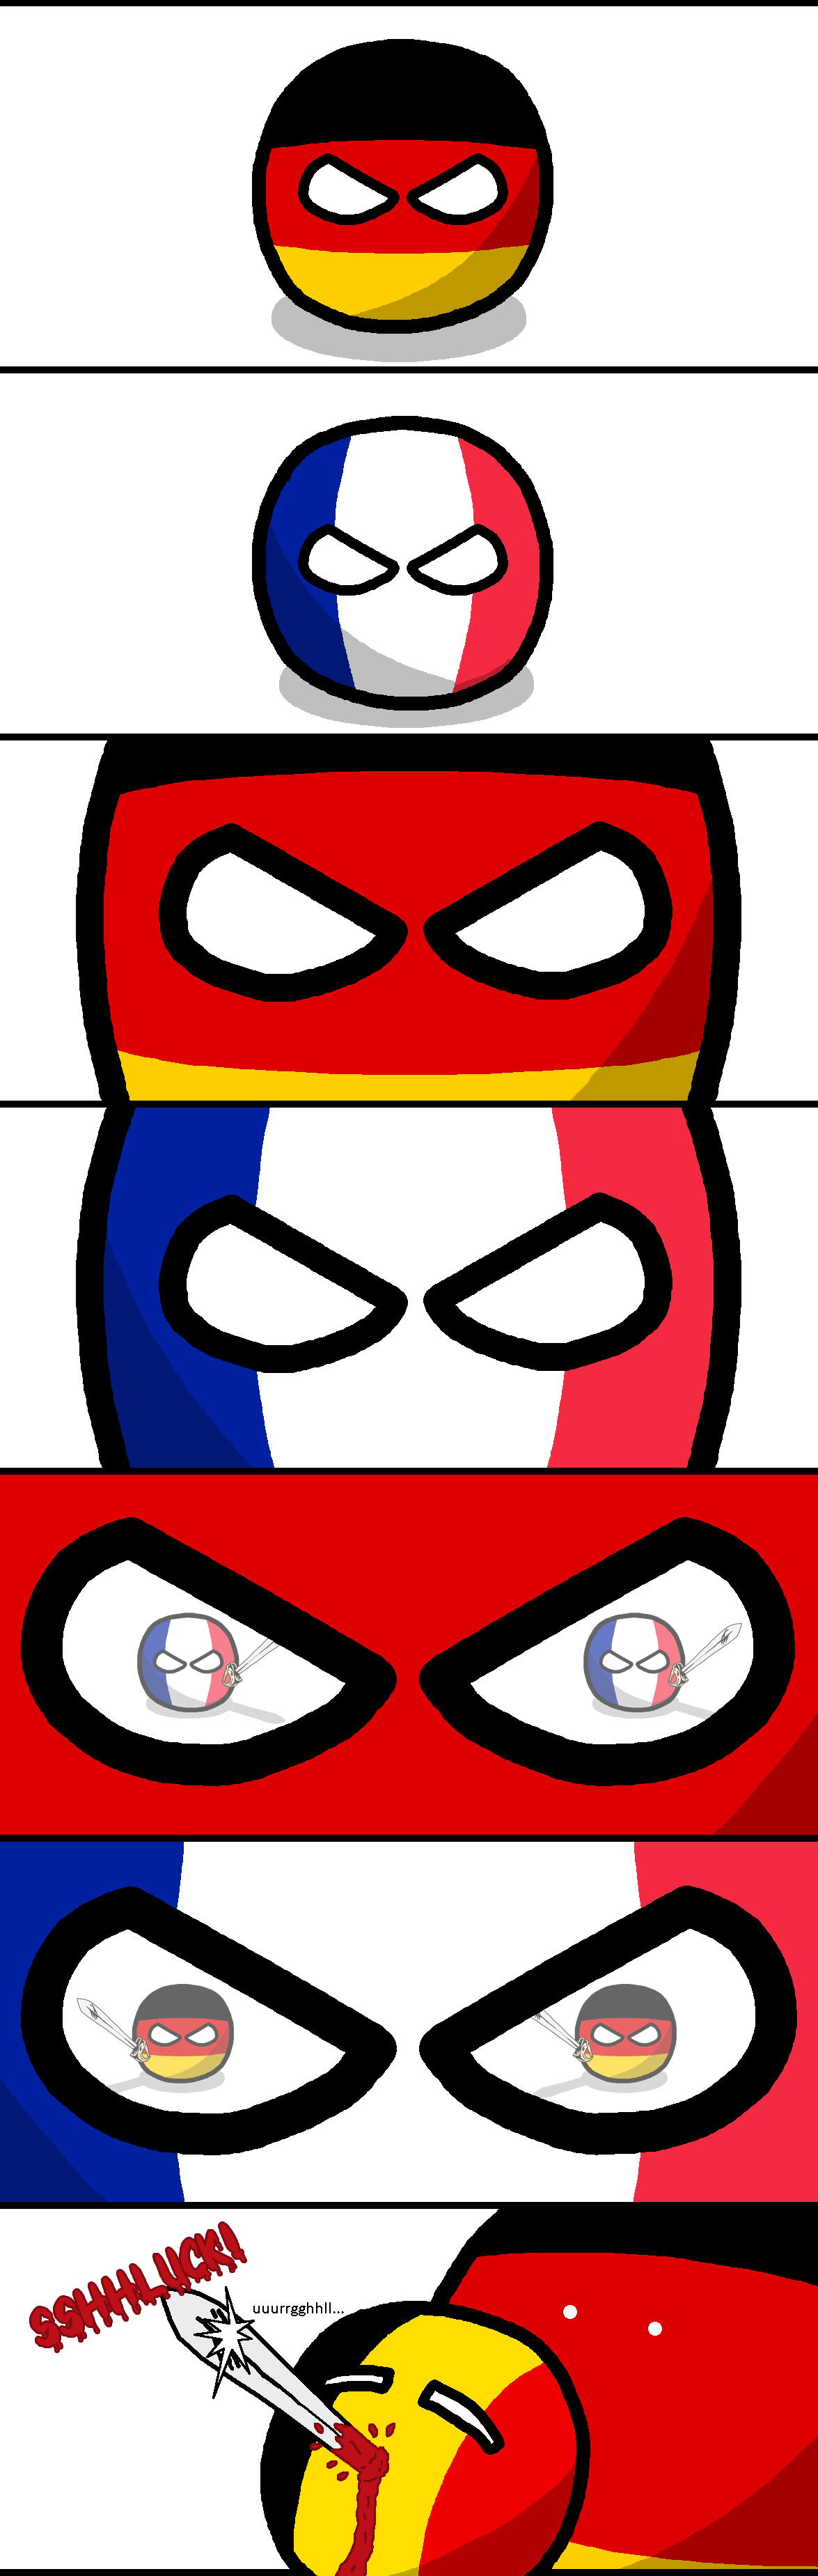 France and Germany at War